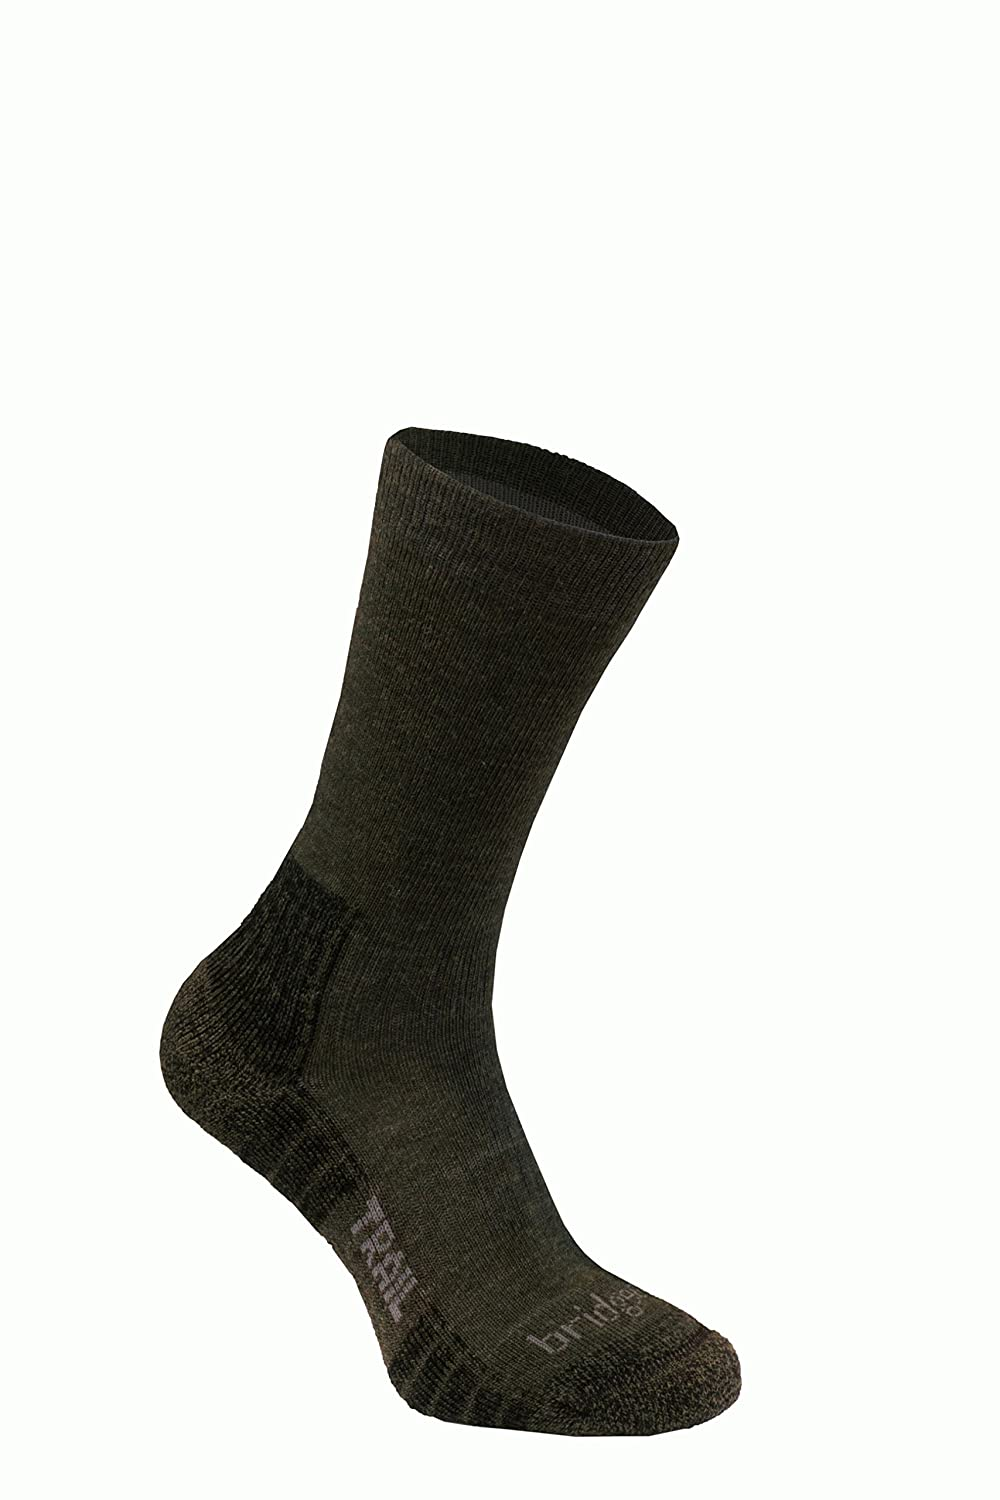 Bridgedale Men's WoolFusion Trail Socks 562070